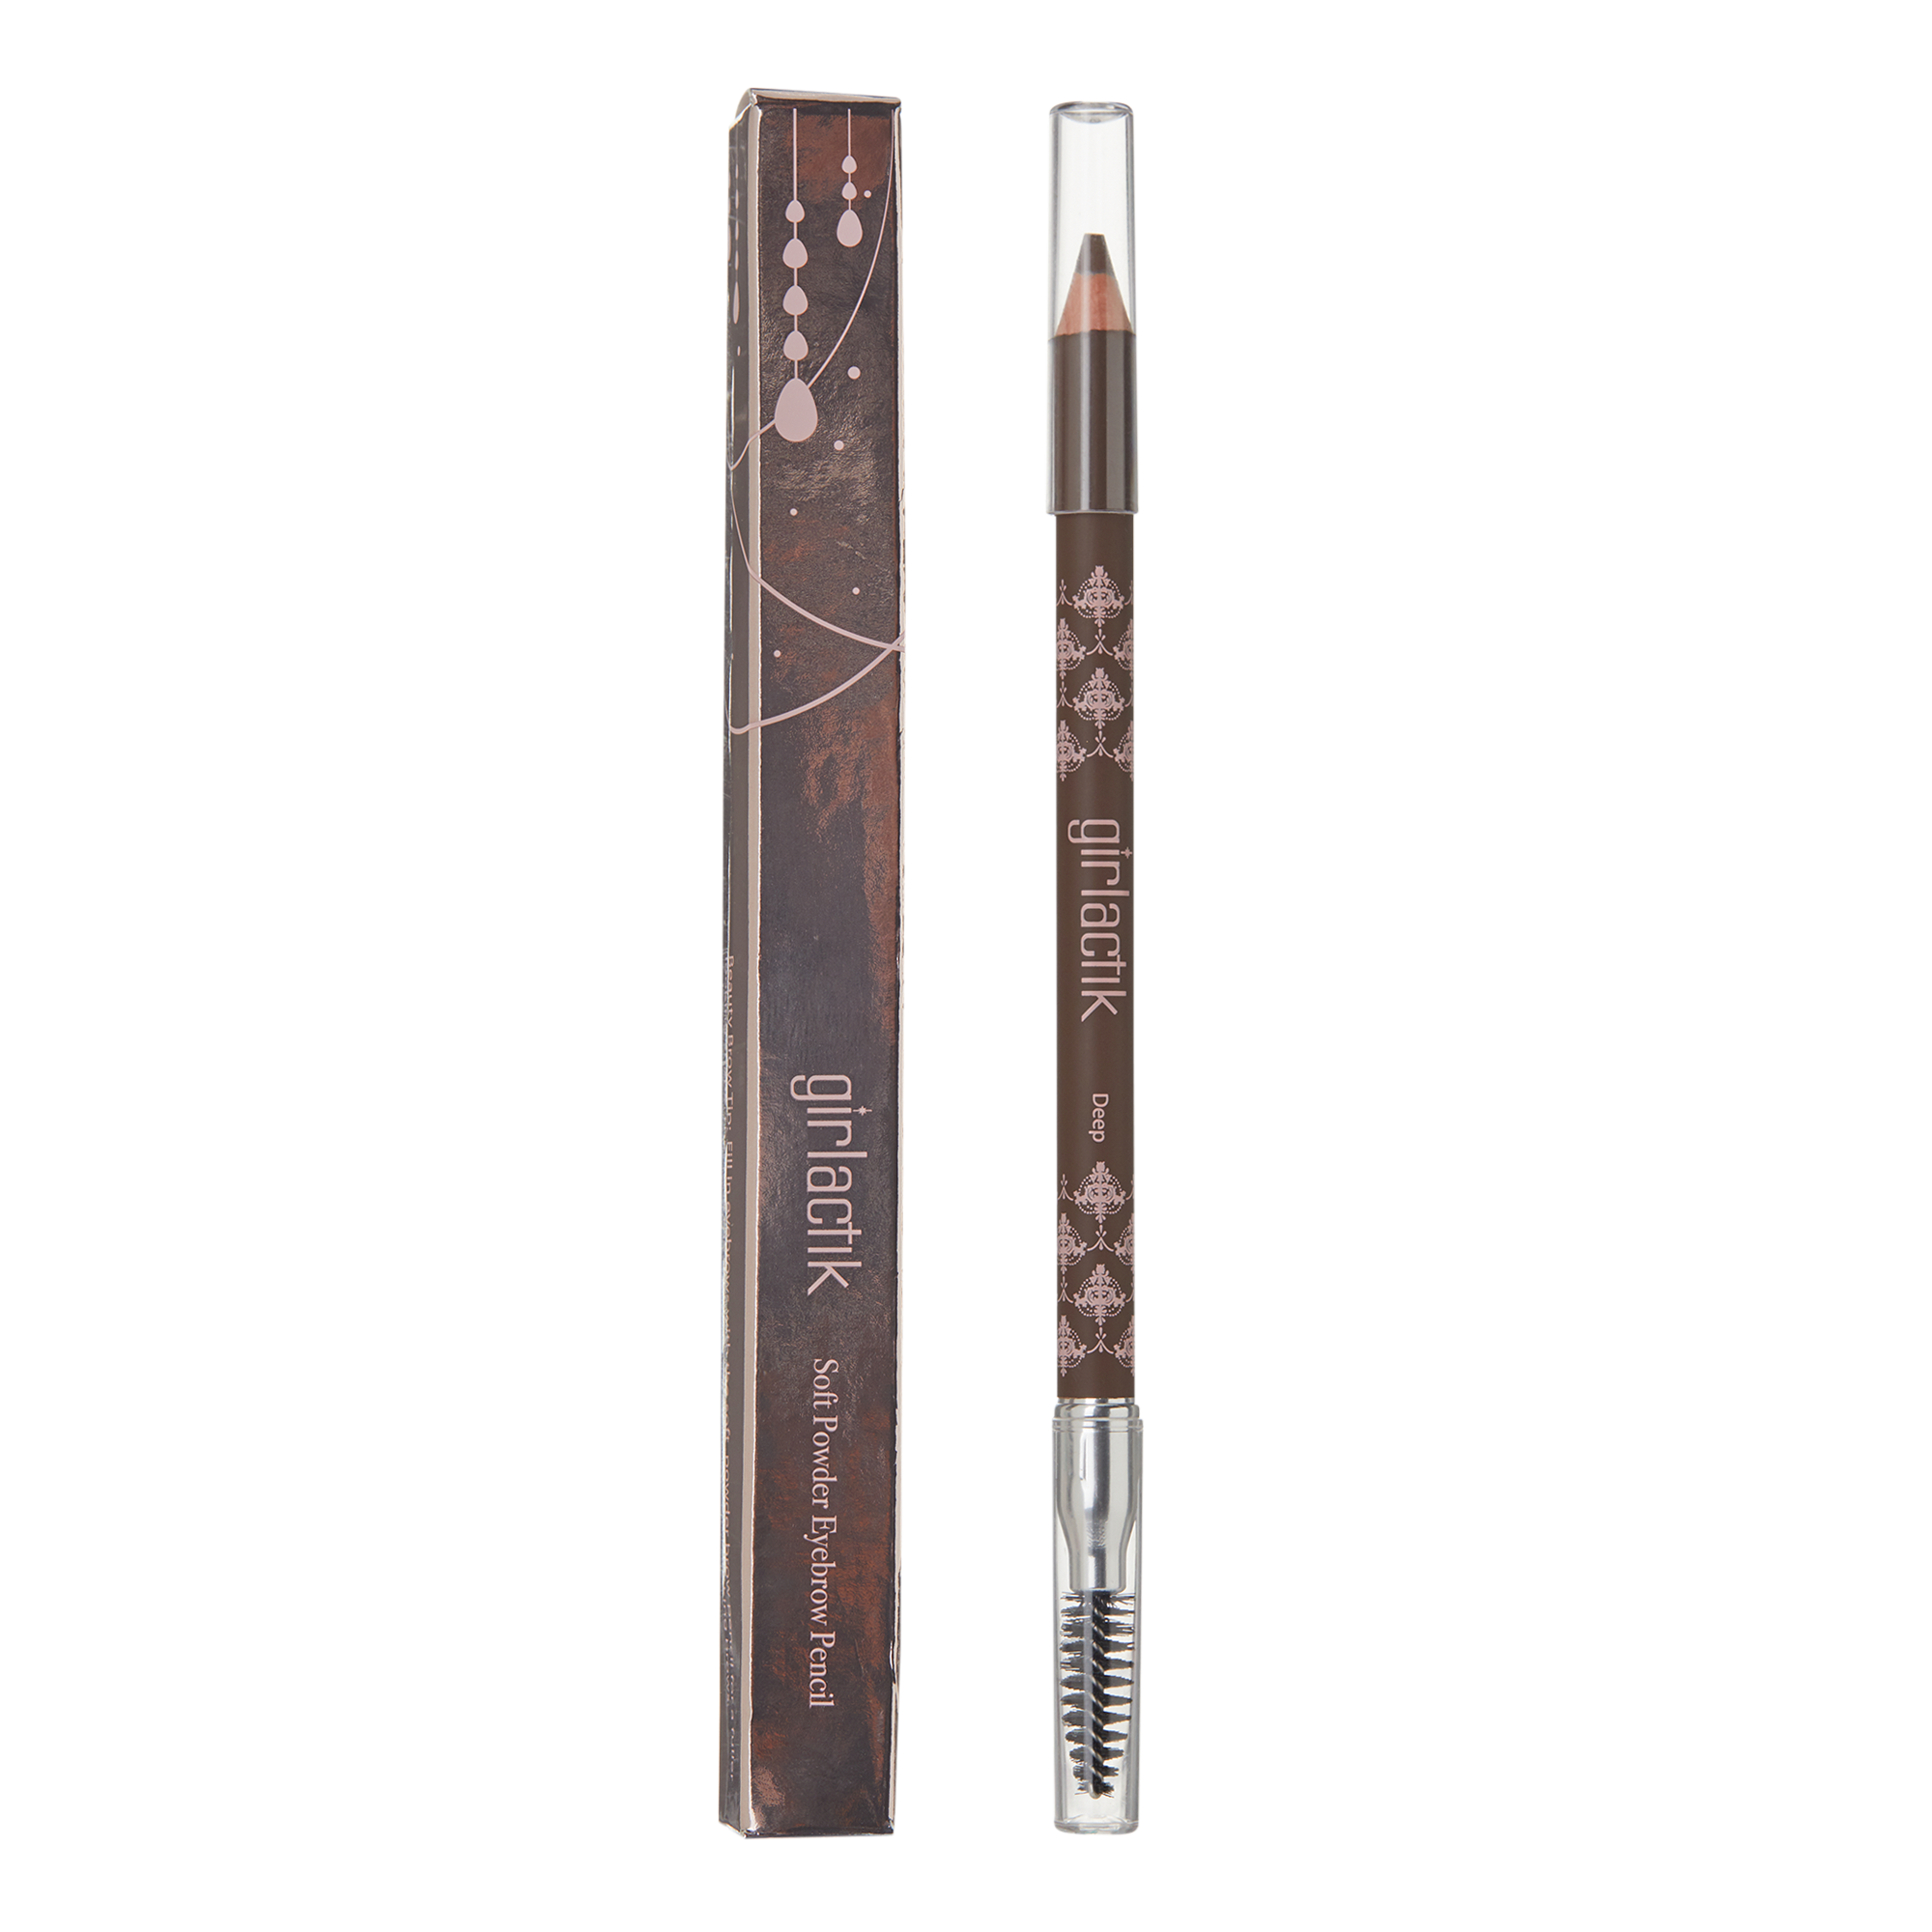 Soft Powder Eyebrow Pencil